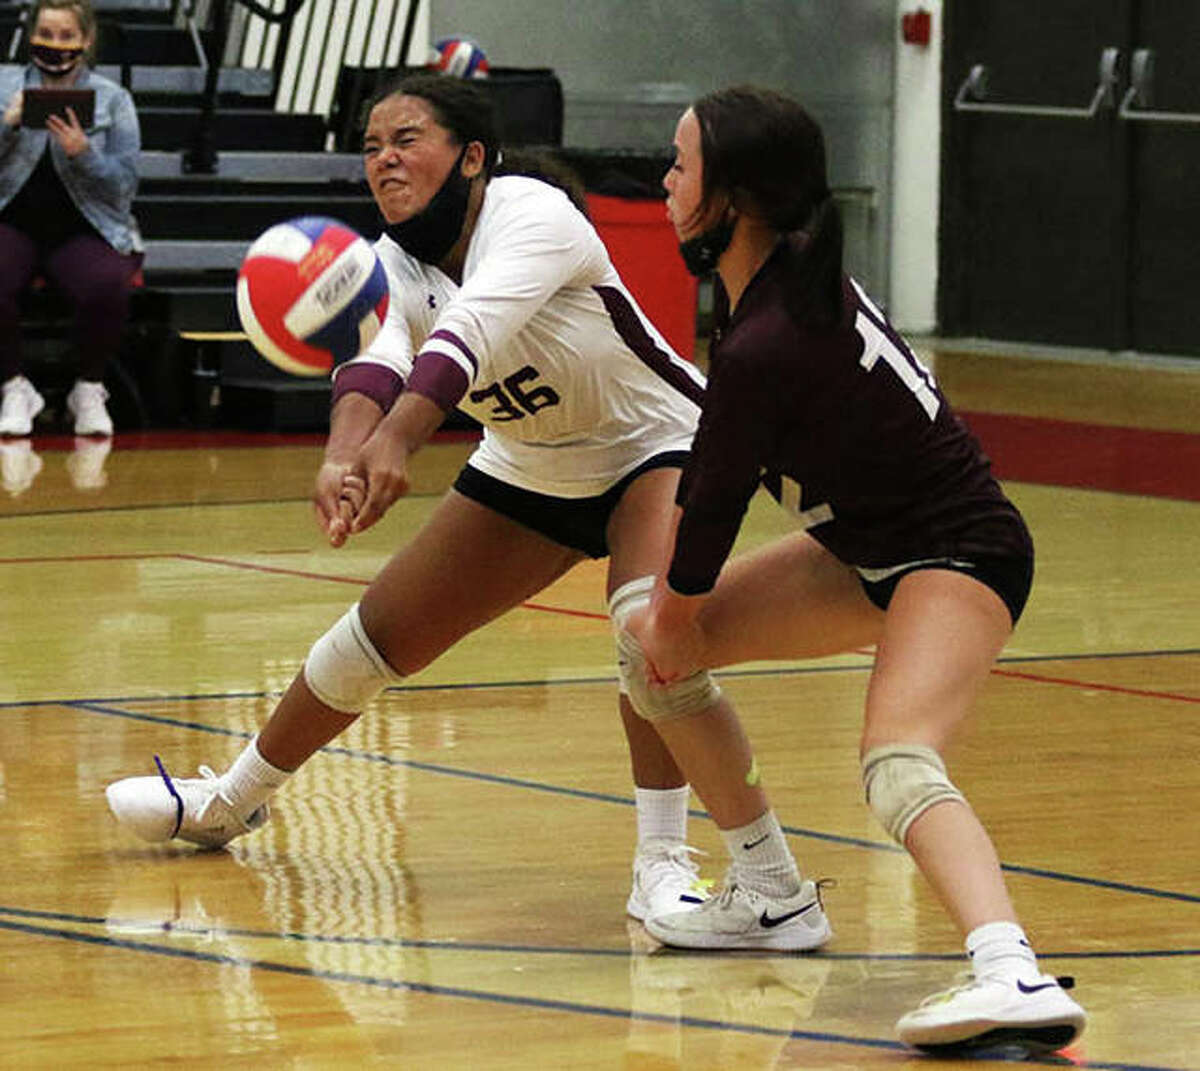 EA-WR's Reaghan William (left) receives a serve in front of Oilers libero Zenn Wilson in a match against Marquette on Monday night at the Roxana Tourney.